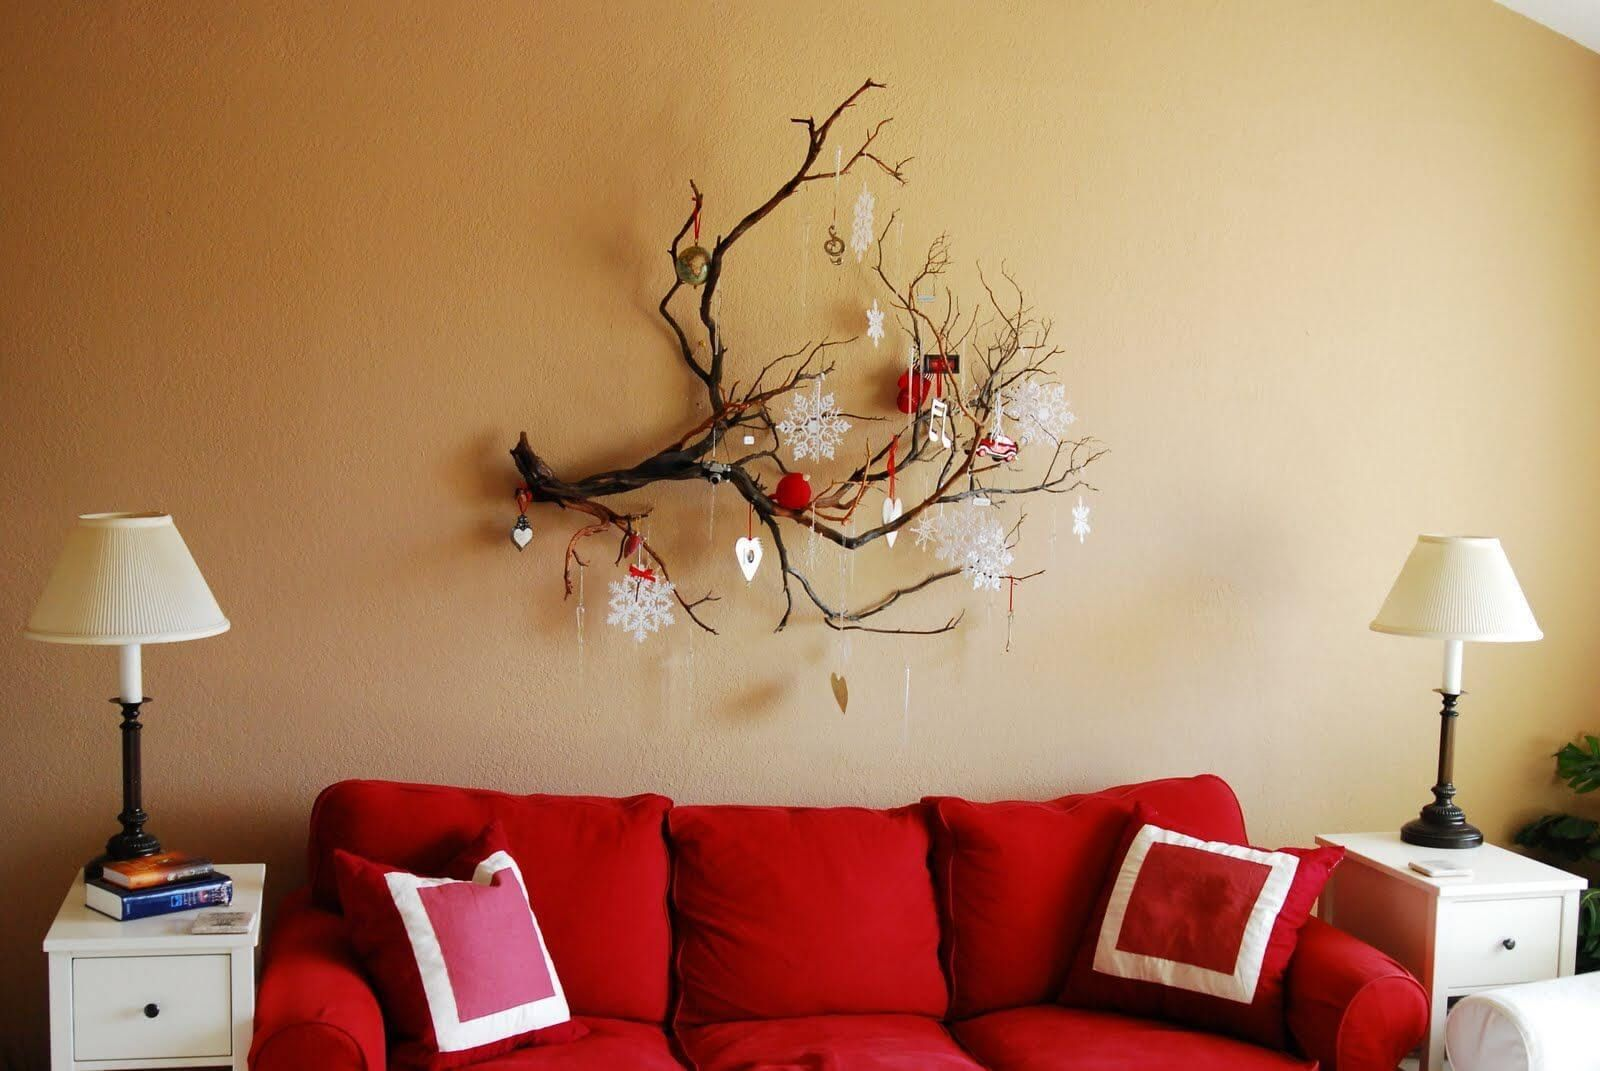 35 Festive Christmas Wall Decor Ideas That Will Instantly Get You Into The Holiday Spirit Christmas Wall Decor Wall Decor Design Hanging Wall Decor